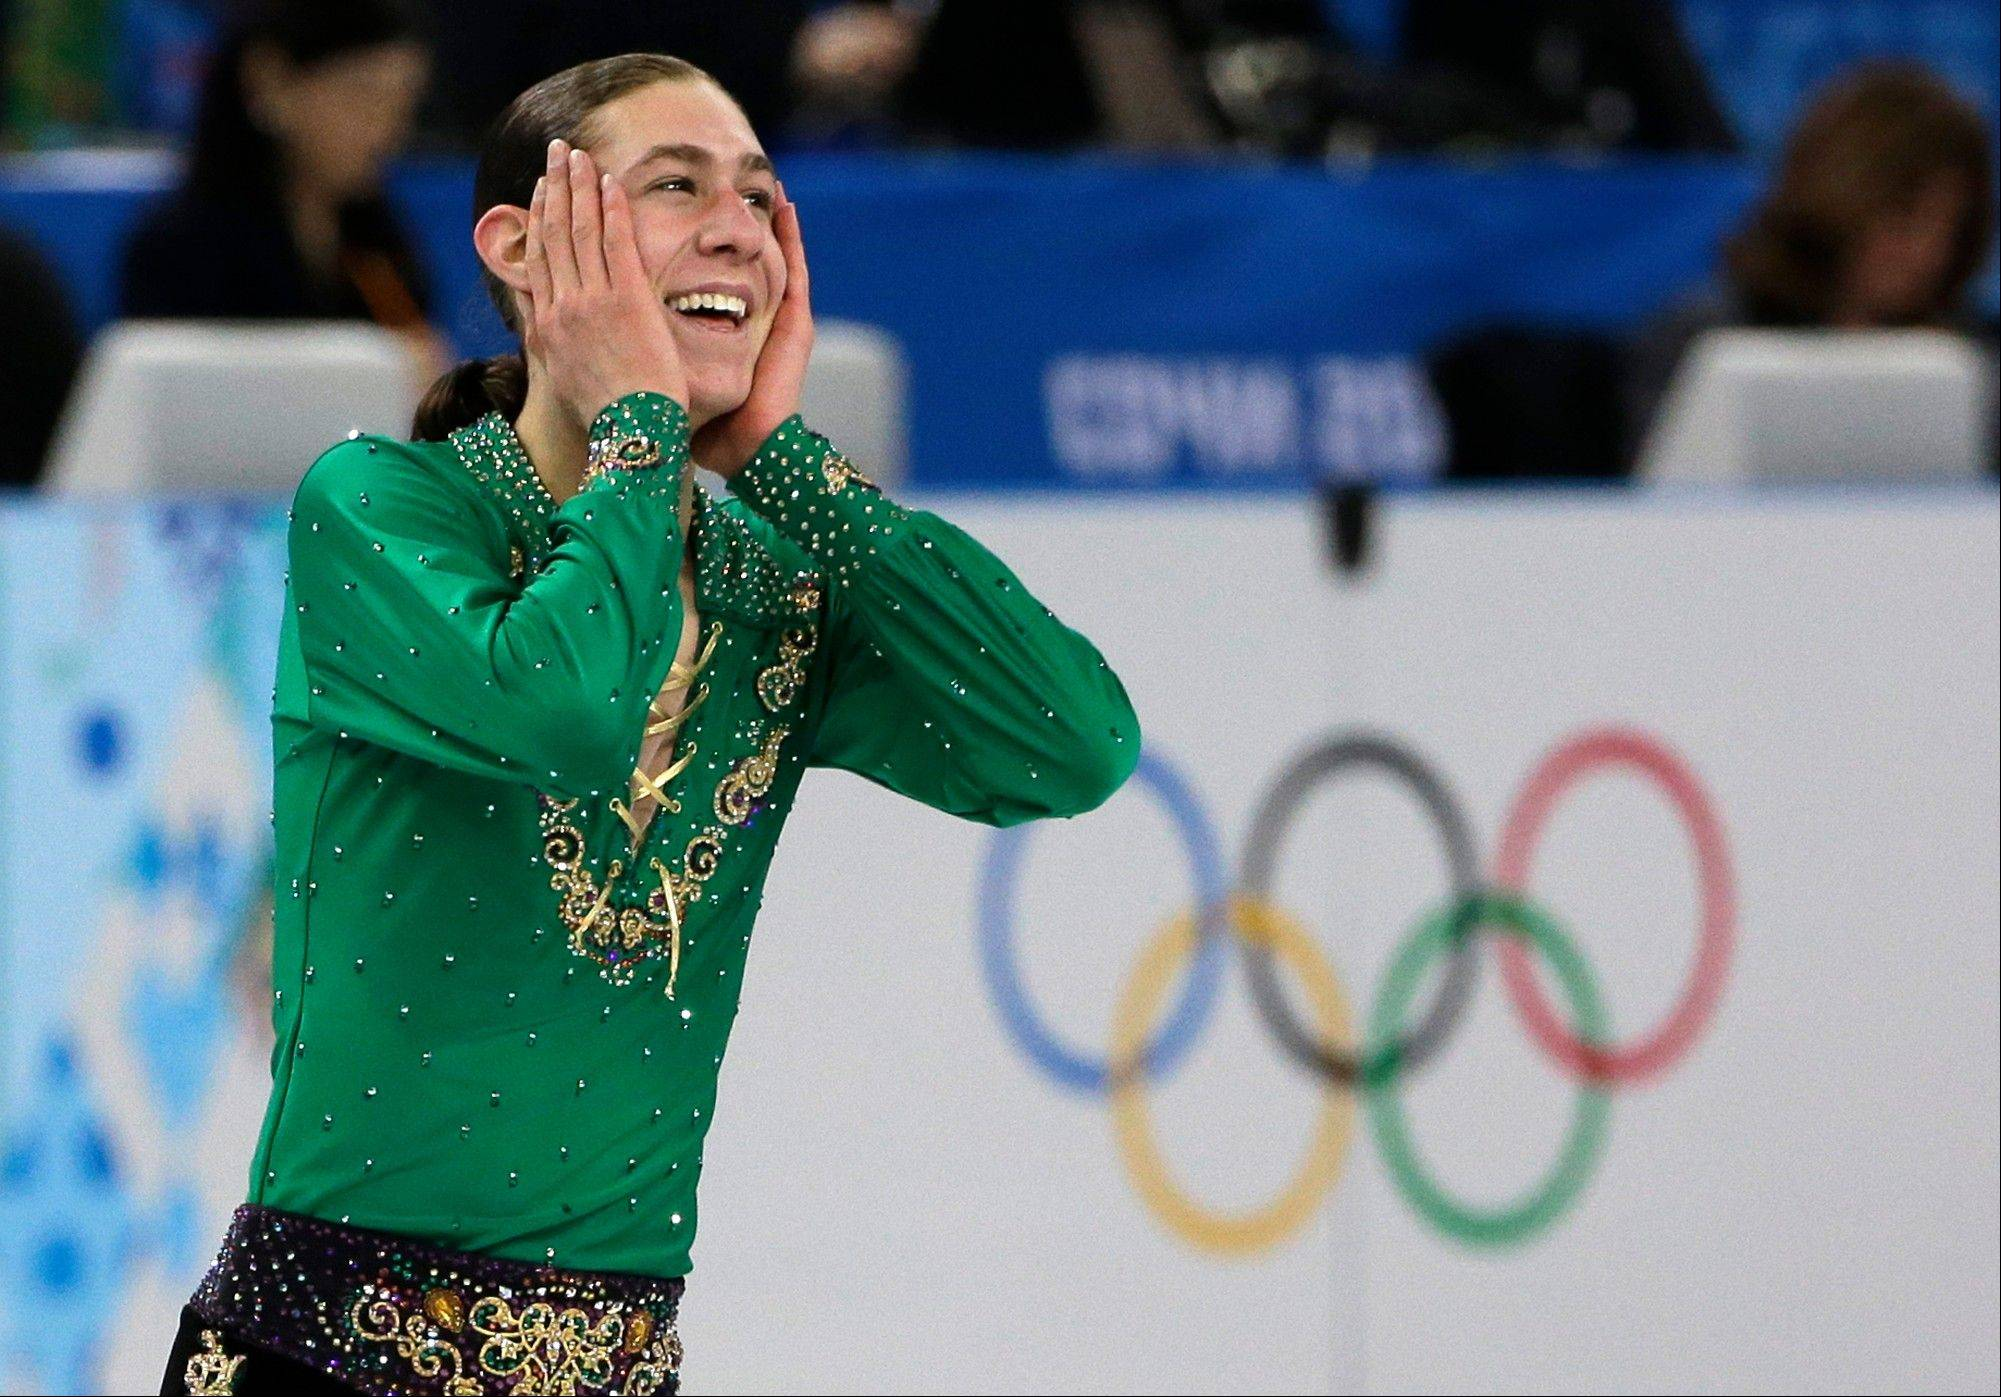 Jason Brown of the United States smiles after competing in the men's team free skate figure skating competition at the Iceberg Skating Palace during the 2014 Winter Olympics, Sunday, Feb. 9, 2014, in Sochi, Russia.